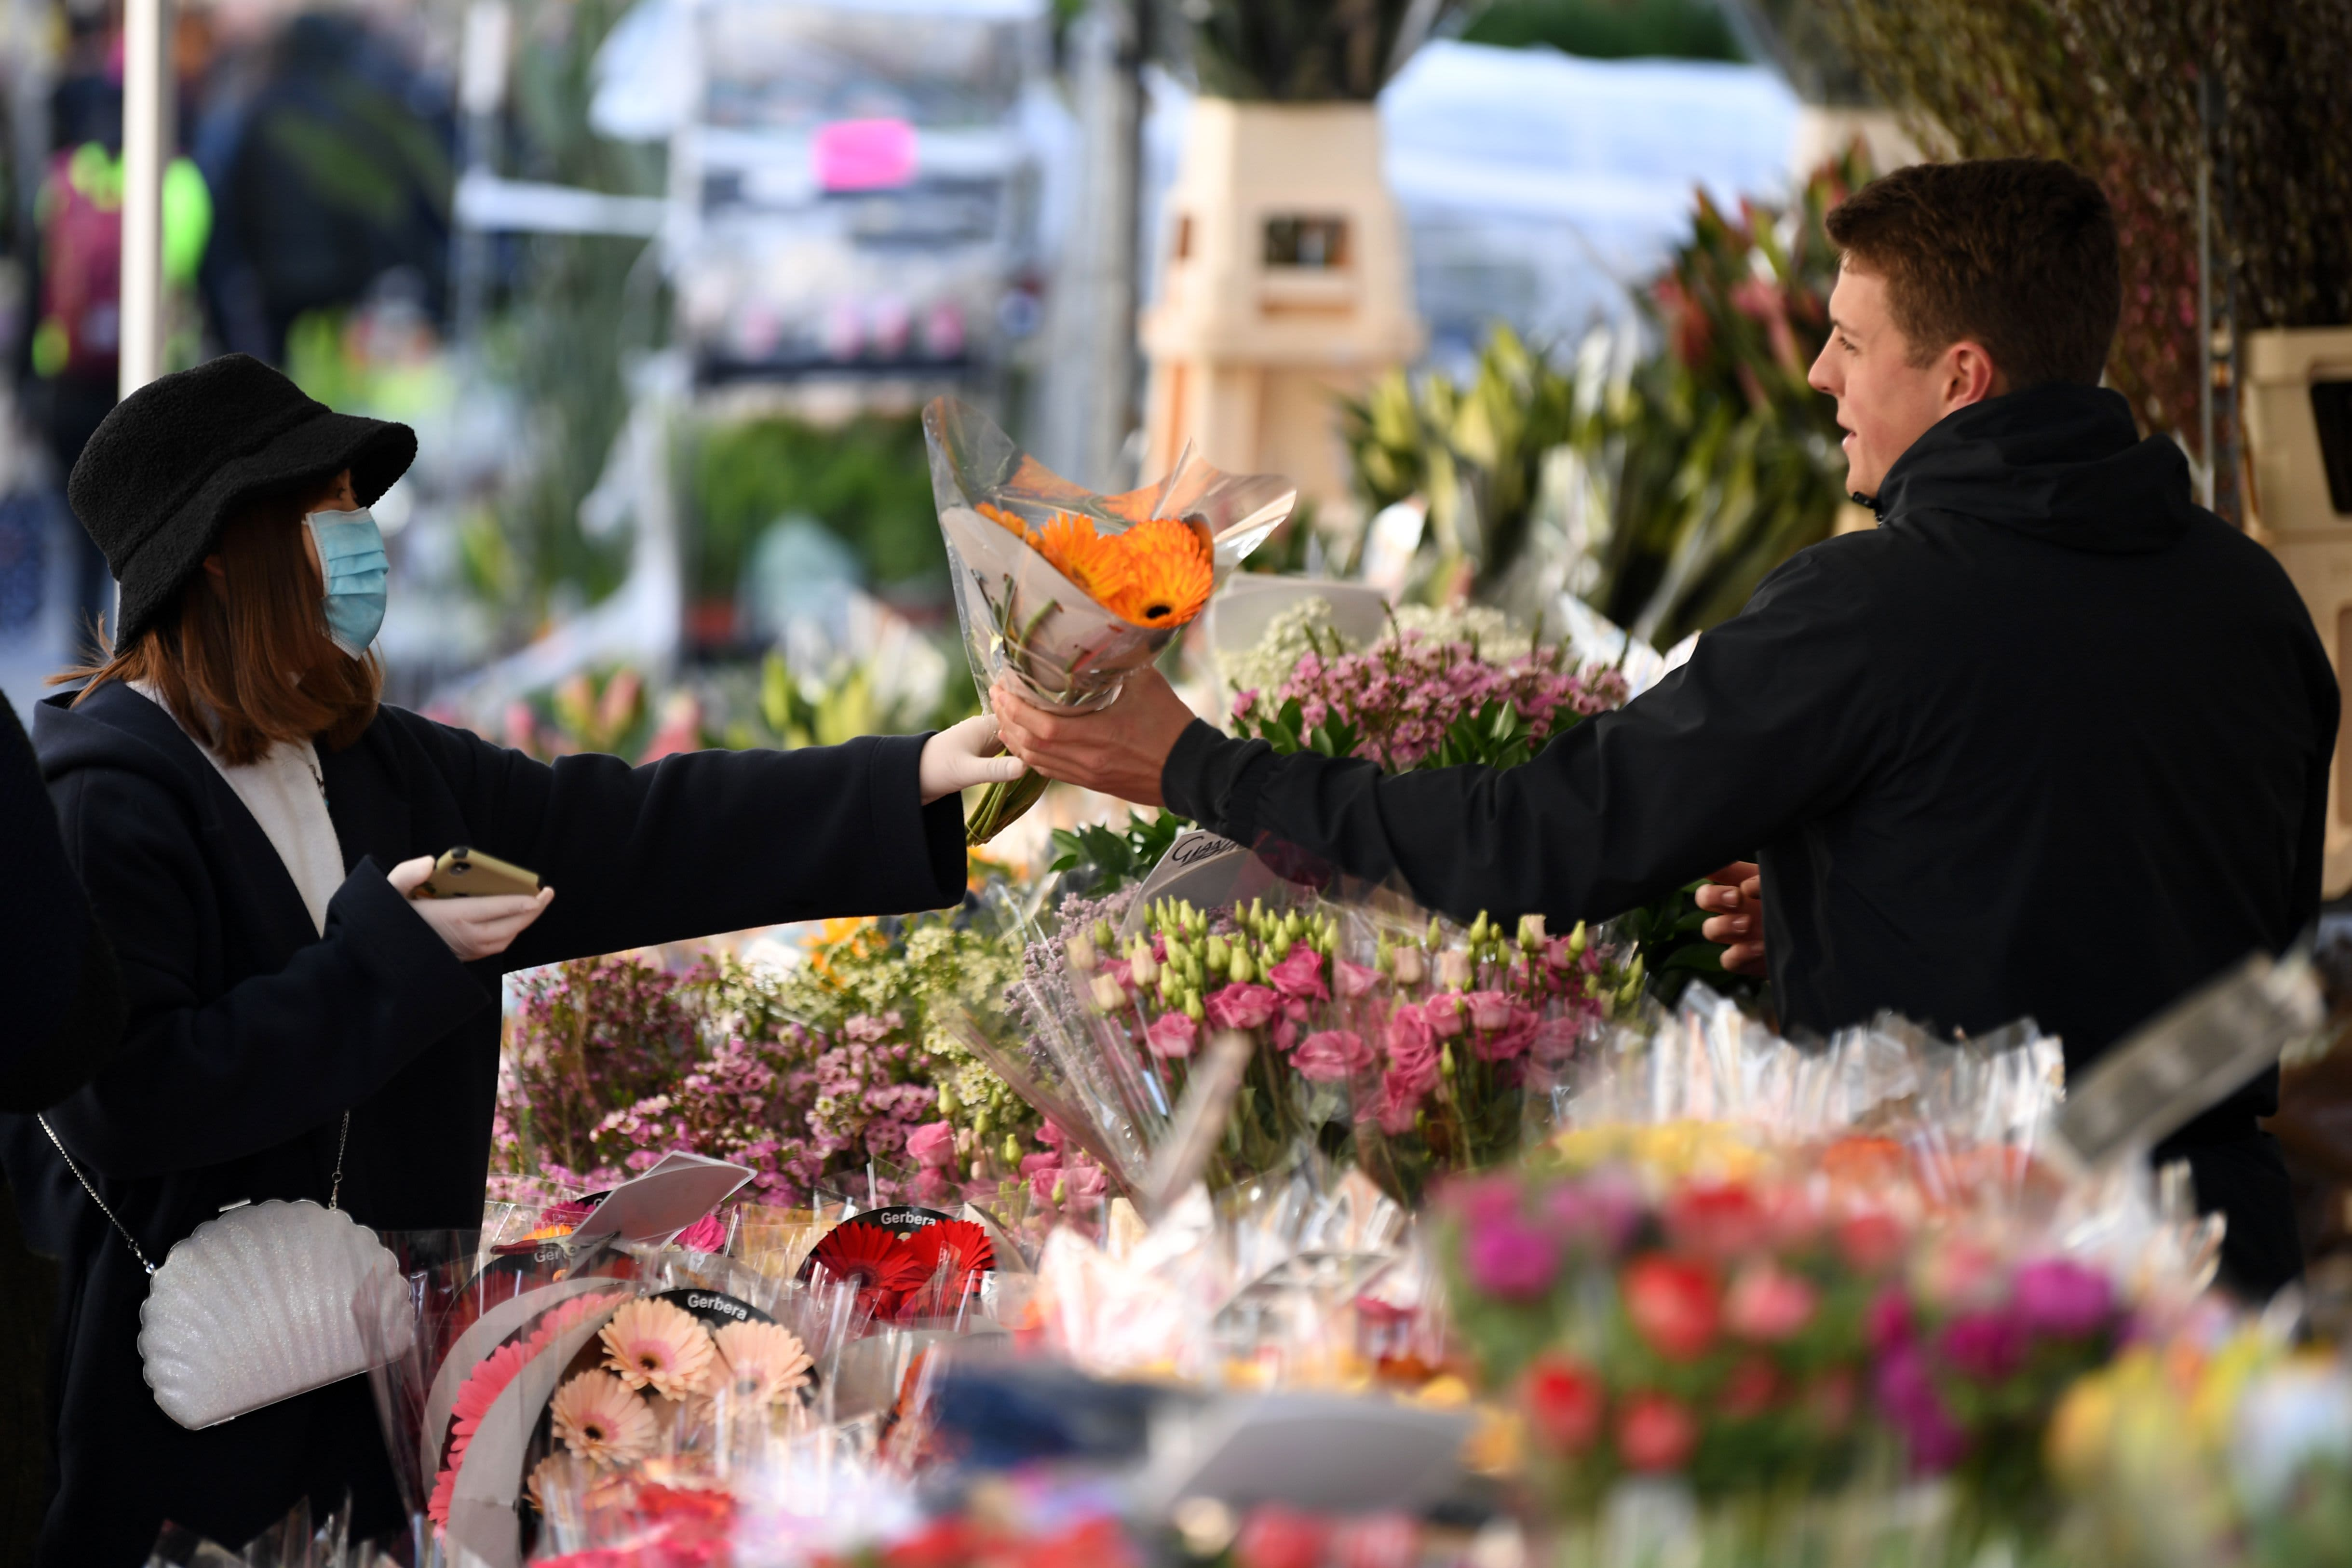 Consumers will be spending more on mom this year, but celebrations are still homebound